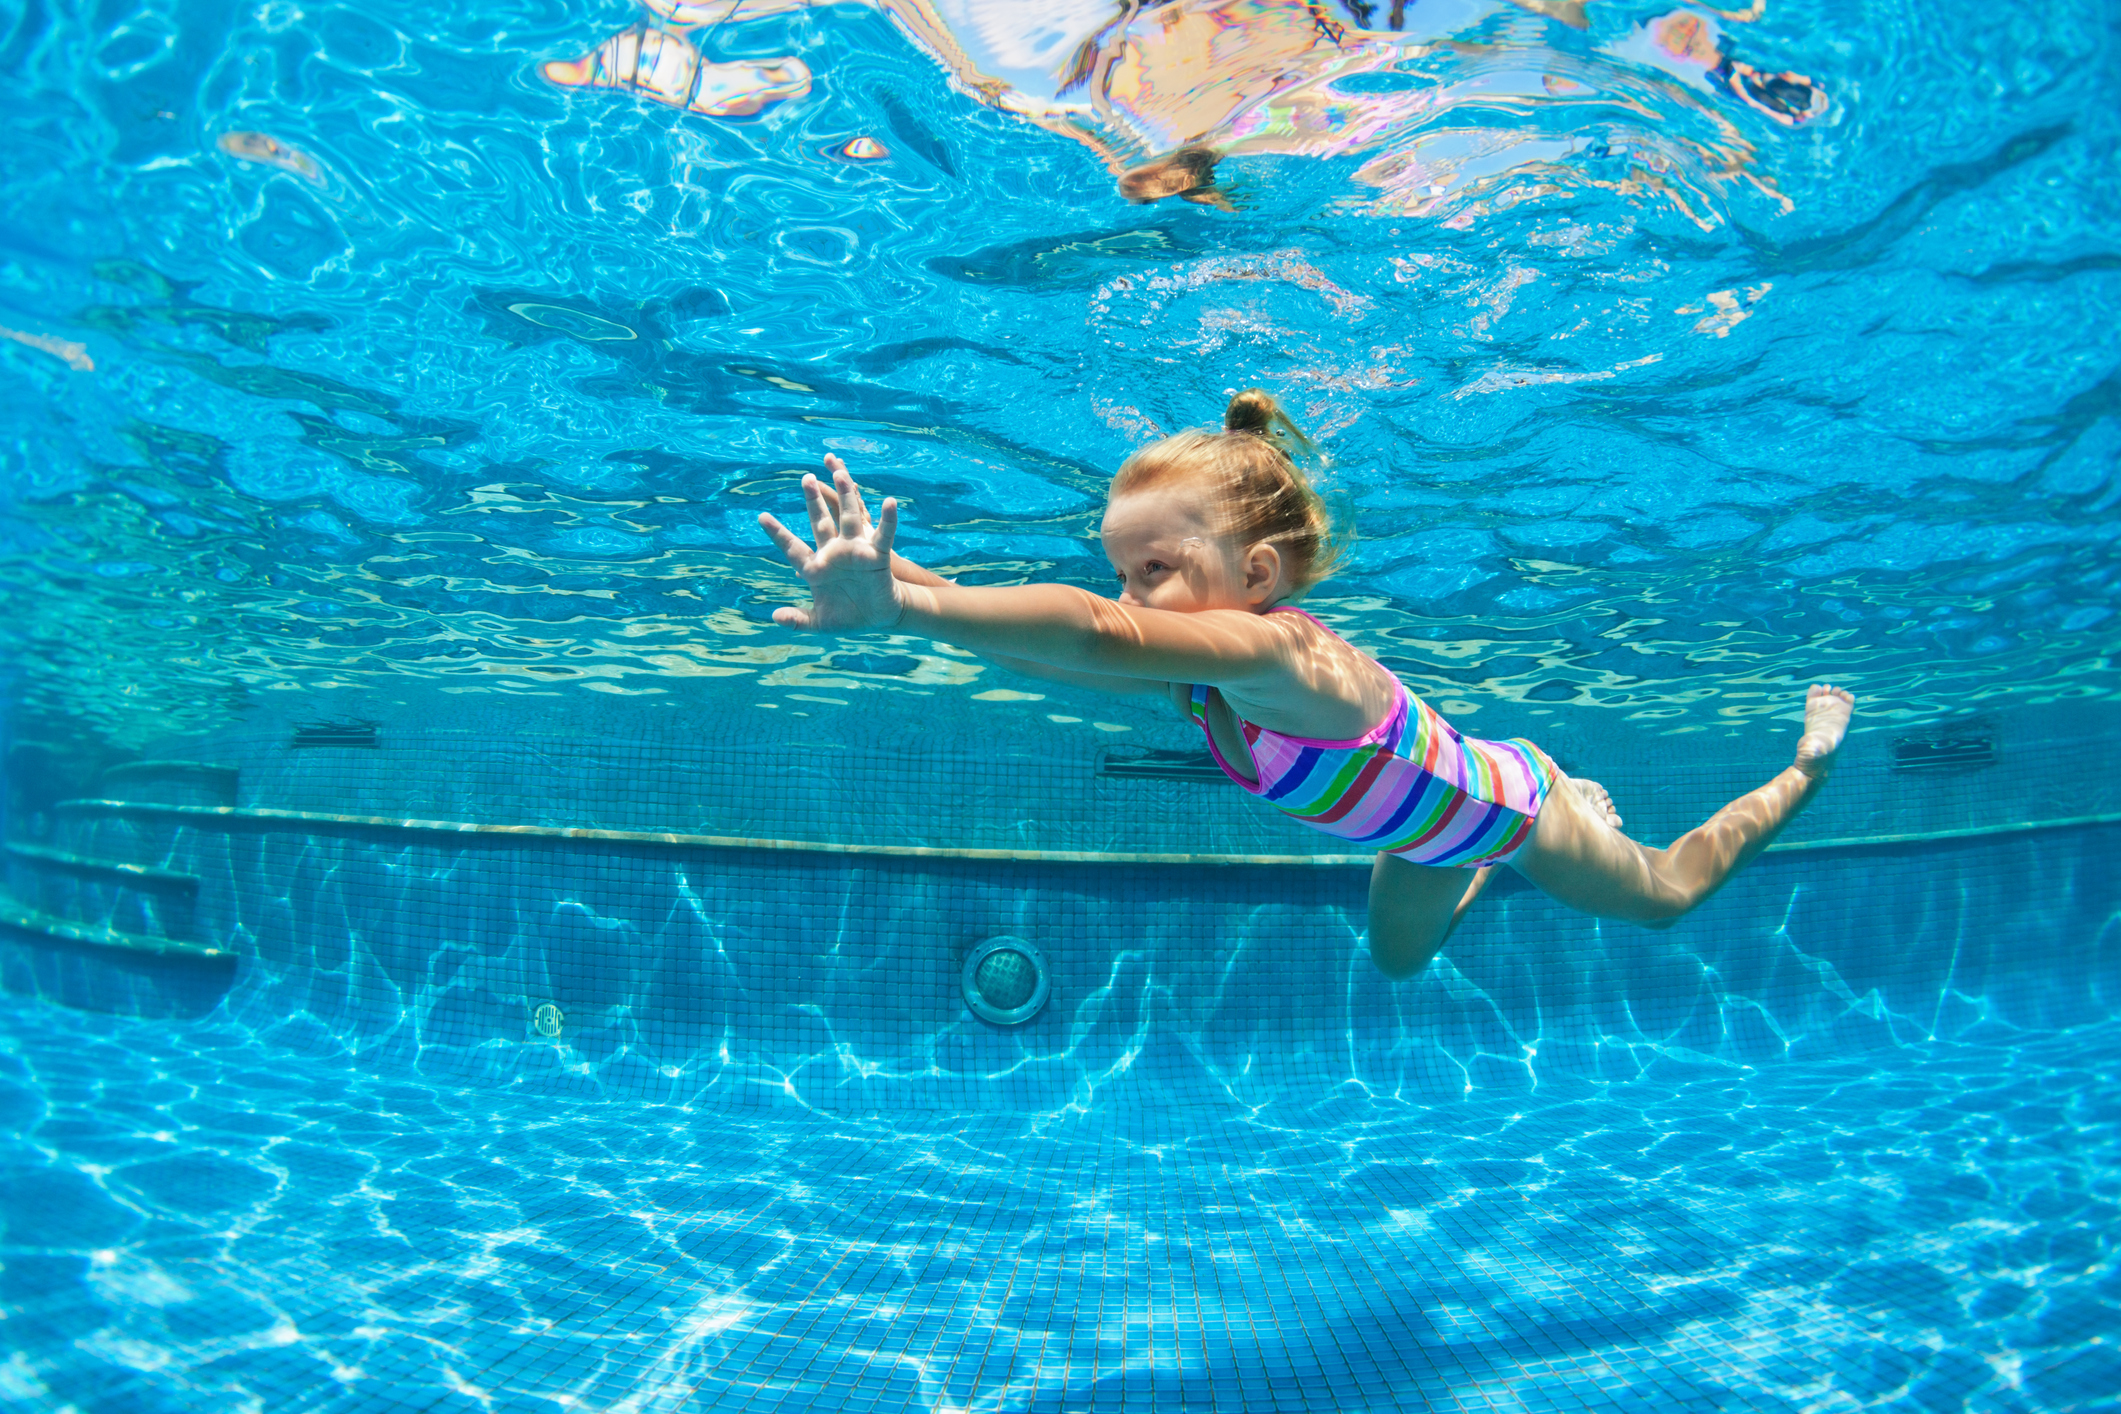 Good Health News on Swimming at Home, But Keep Testing Your Water's Safety